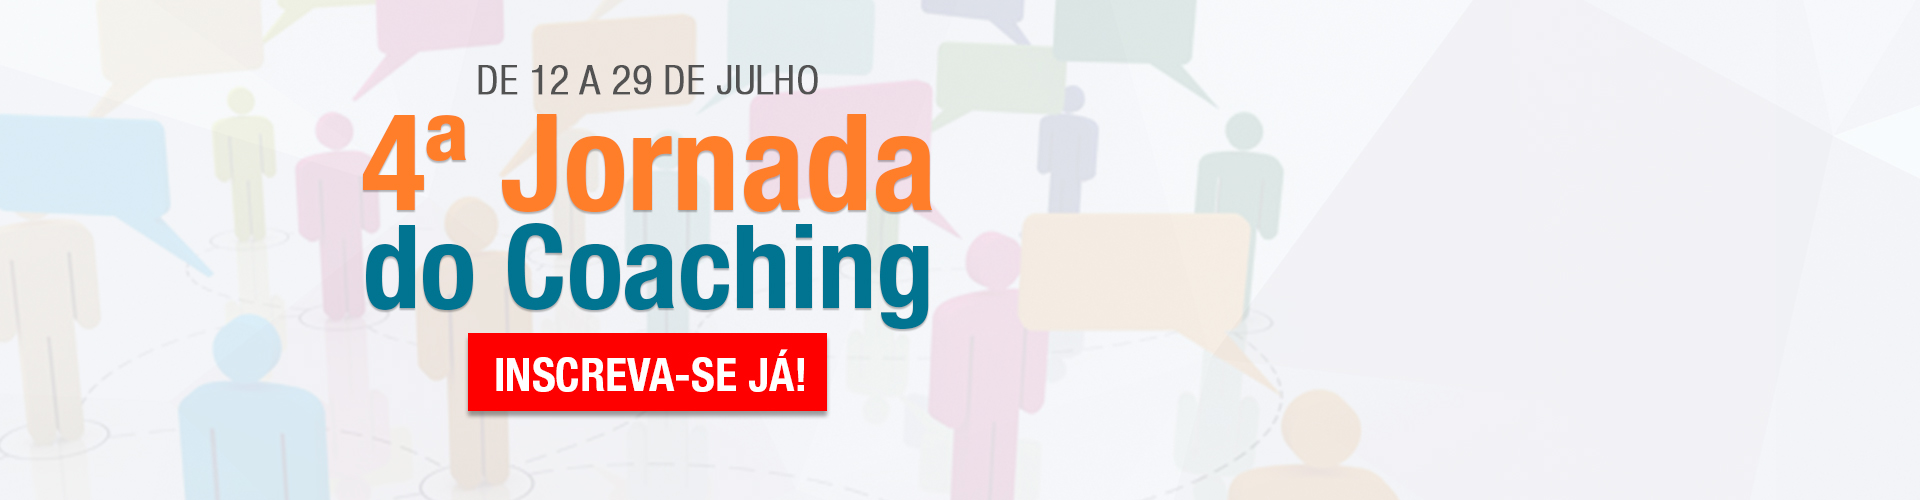 4º jornada do coaching Abracoaching